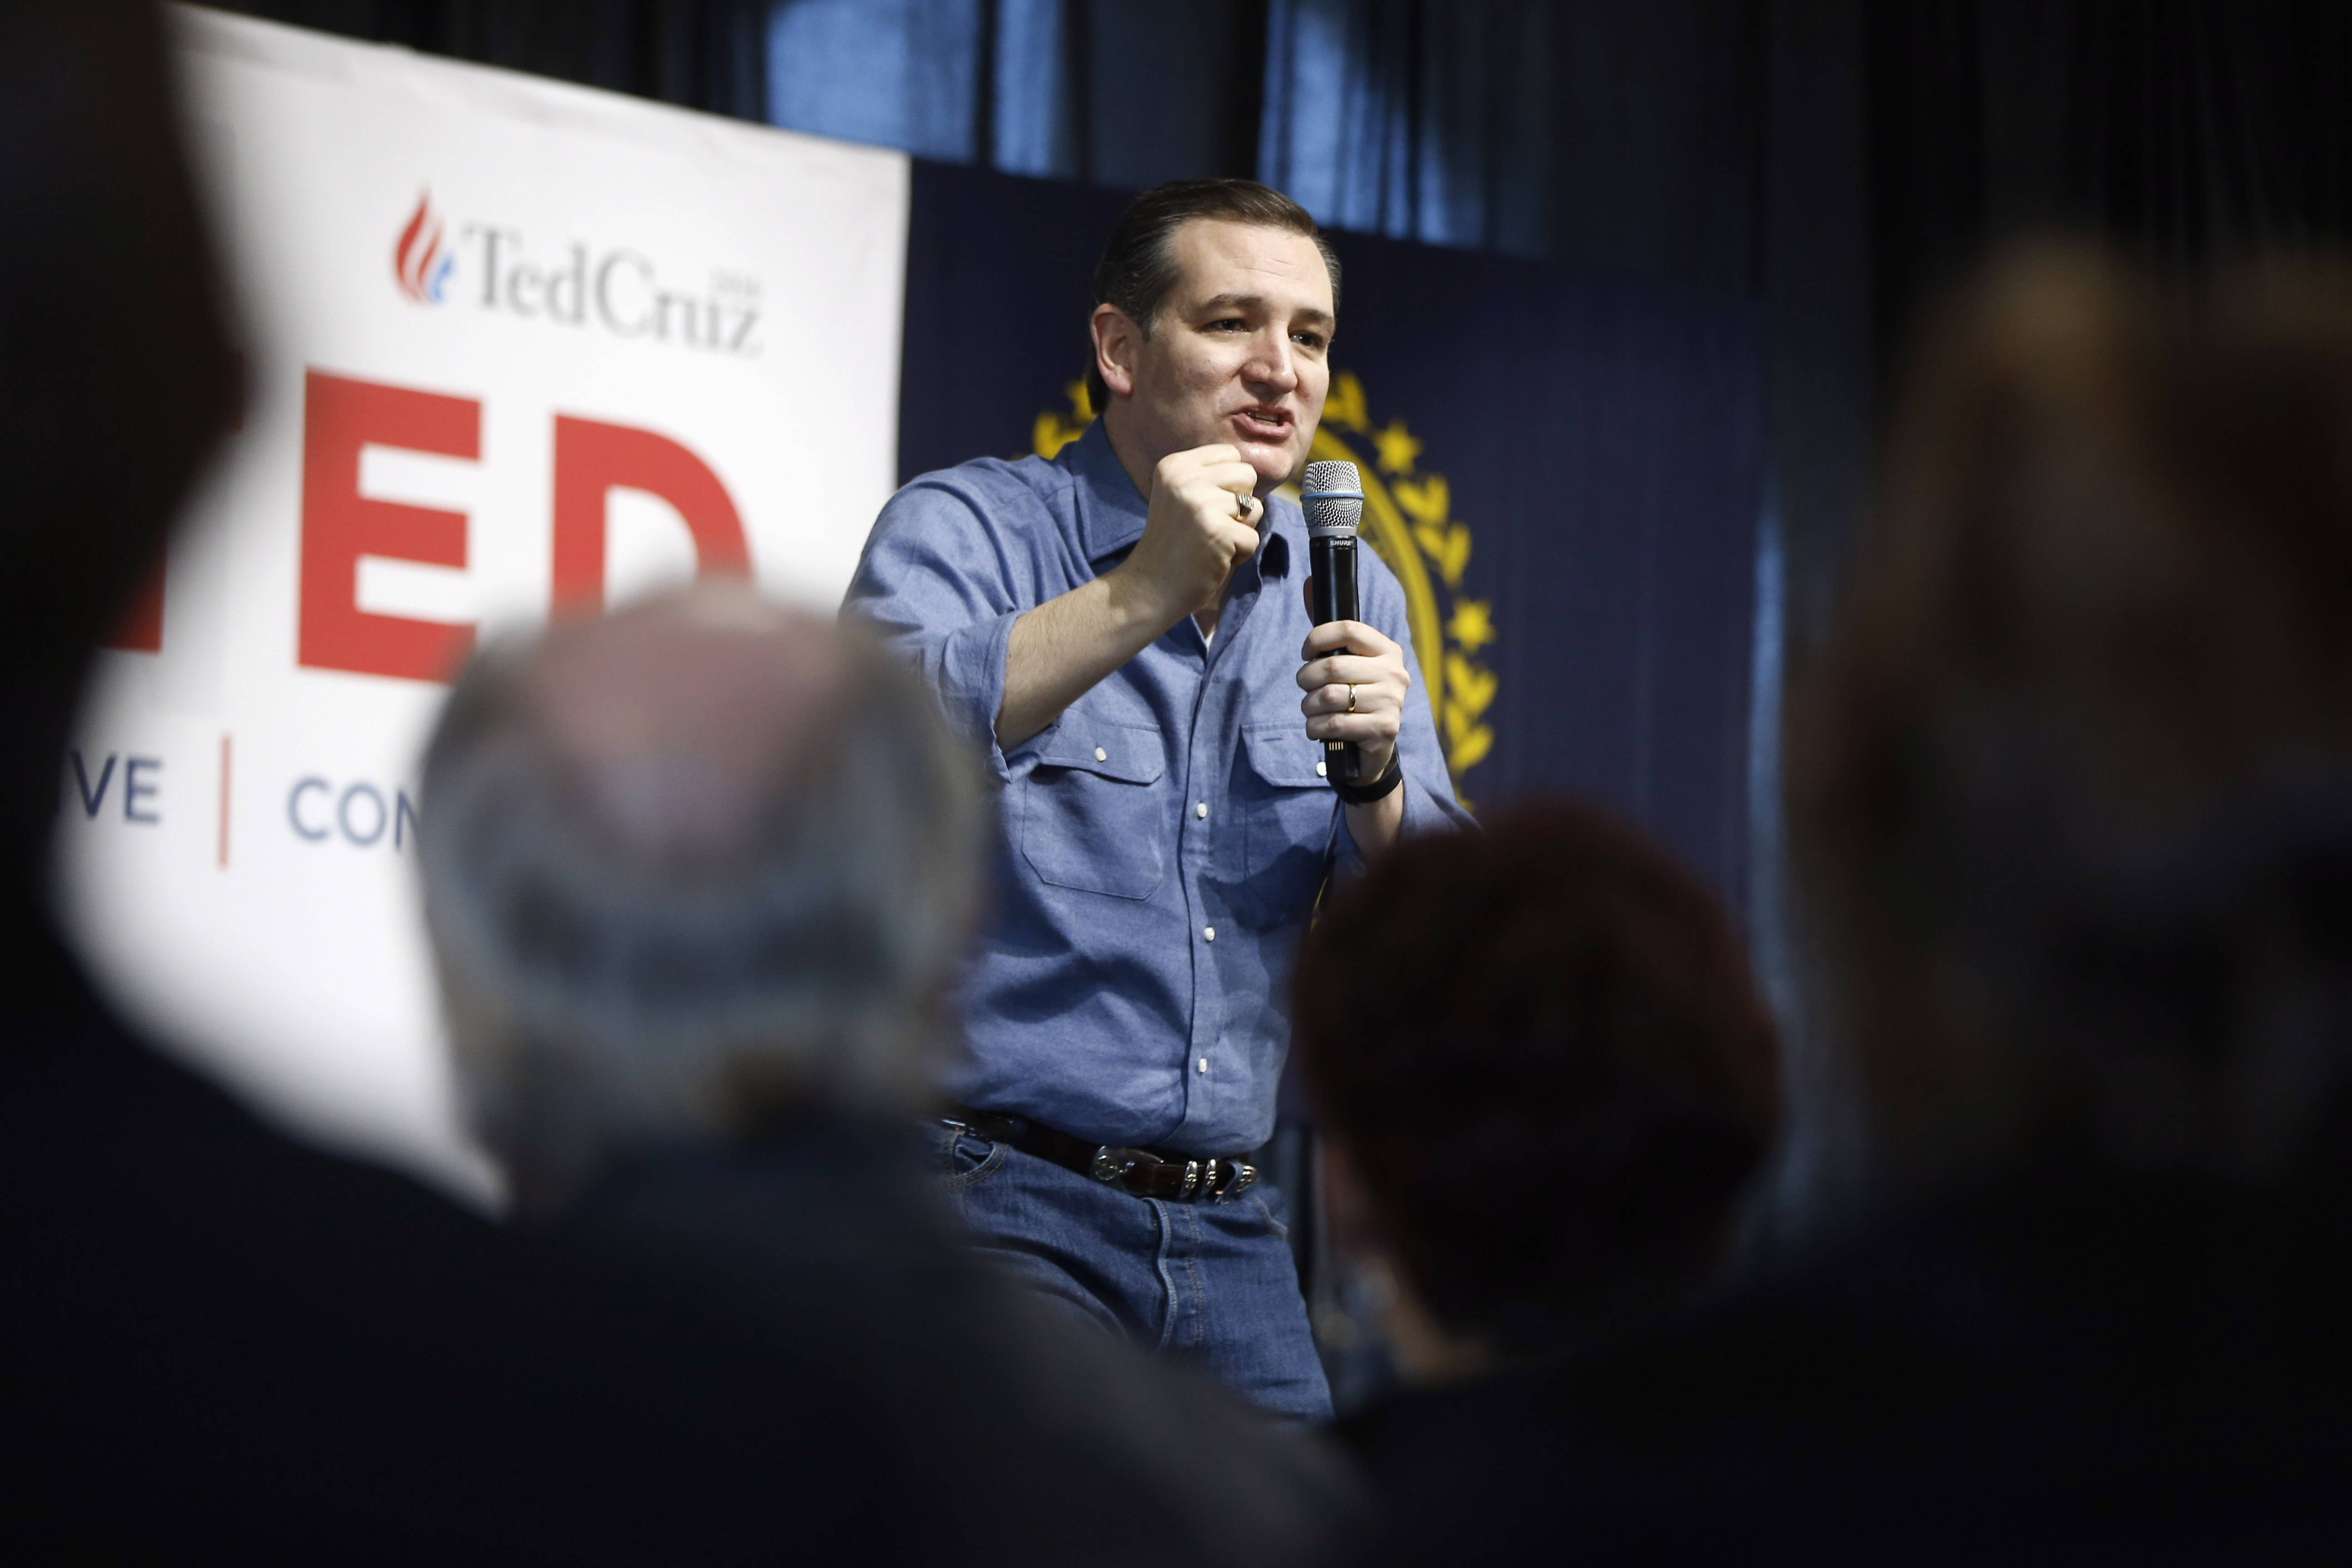 Ted Cruz to headline suburban event days before Illinois primary